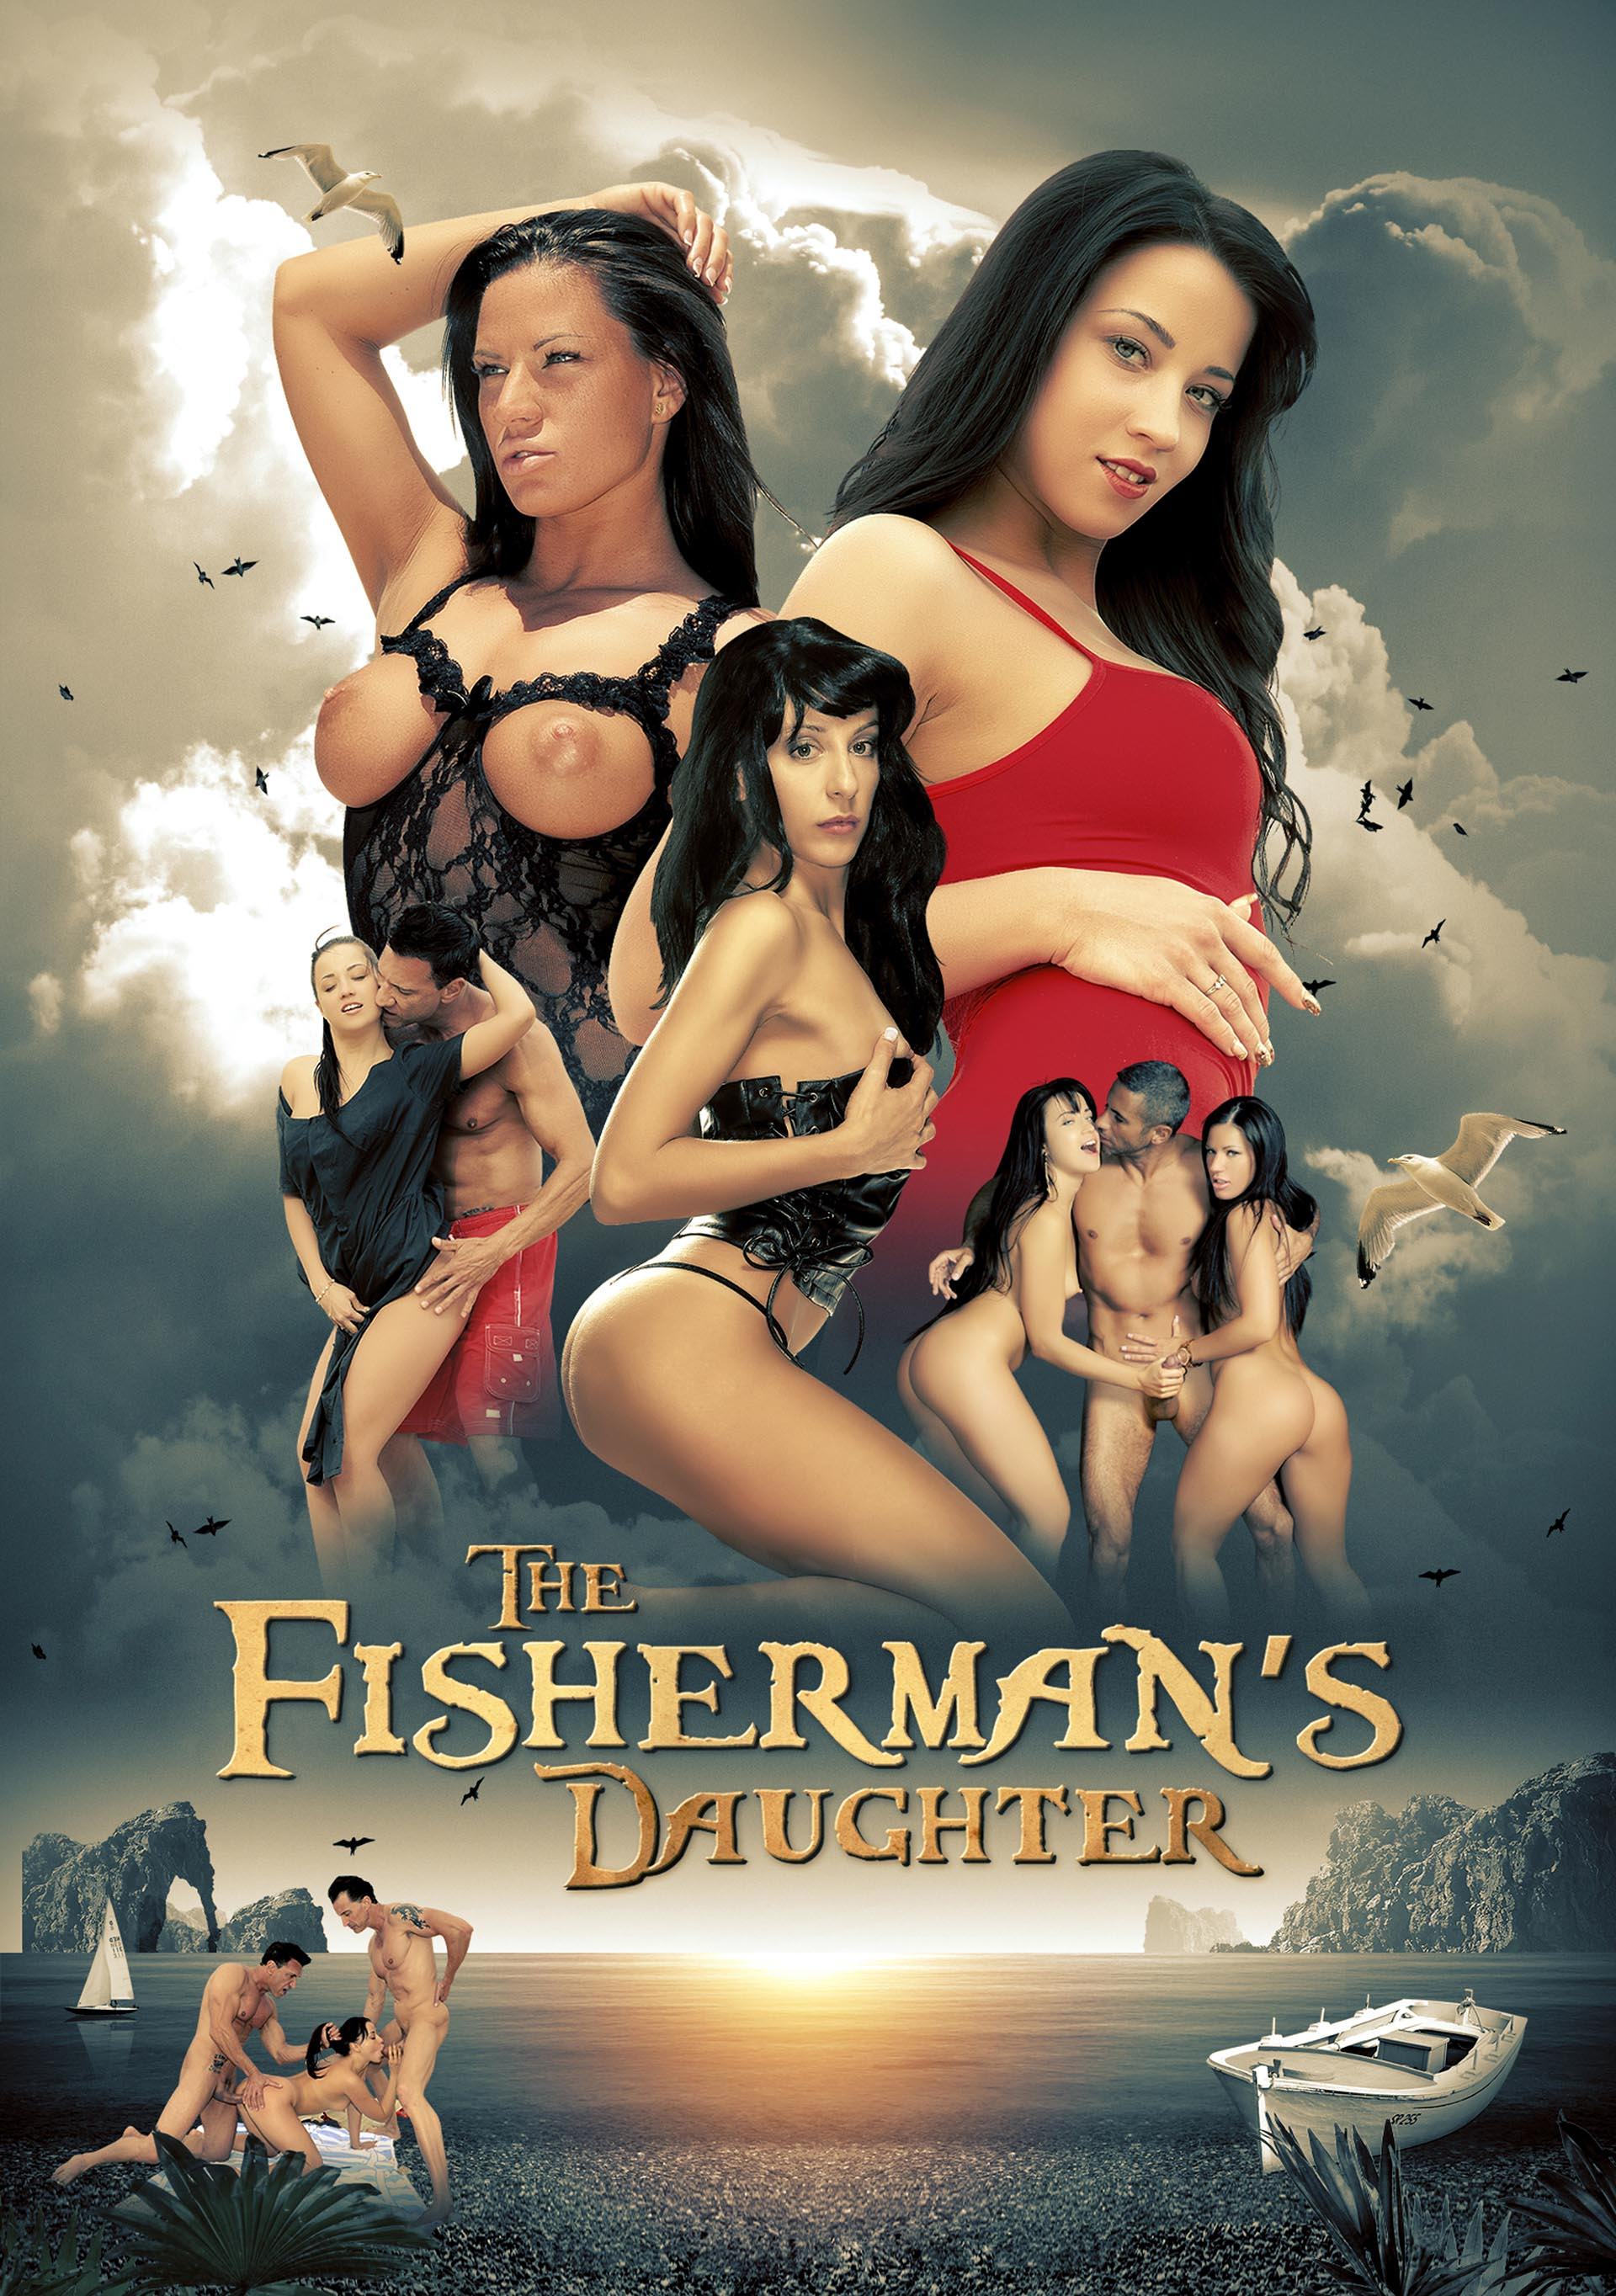 SIrinaEntertainment_TheFishermansDaughter_Sleeve_Artwork_Version2.jpg